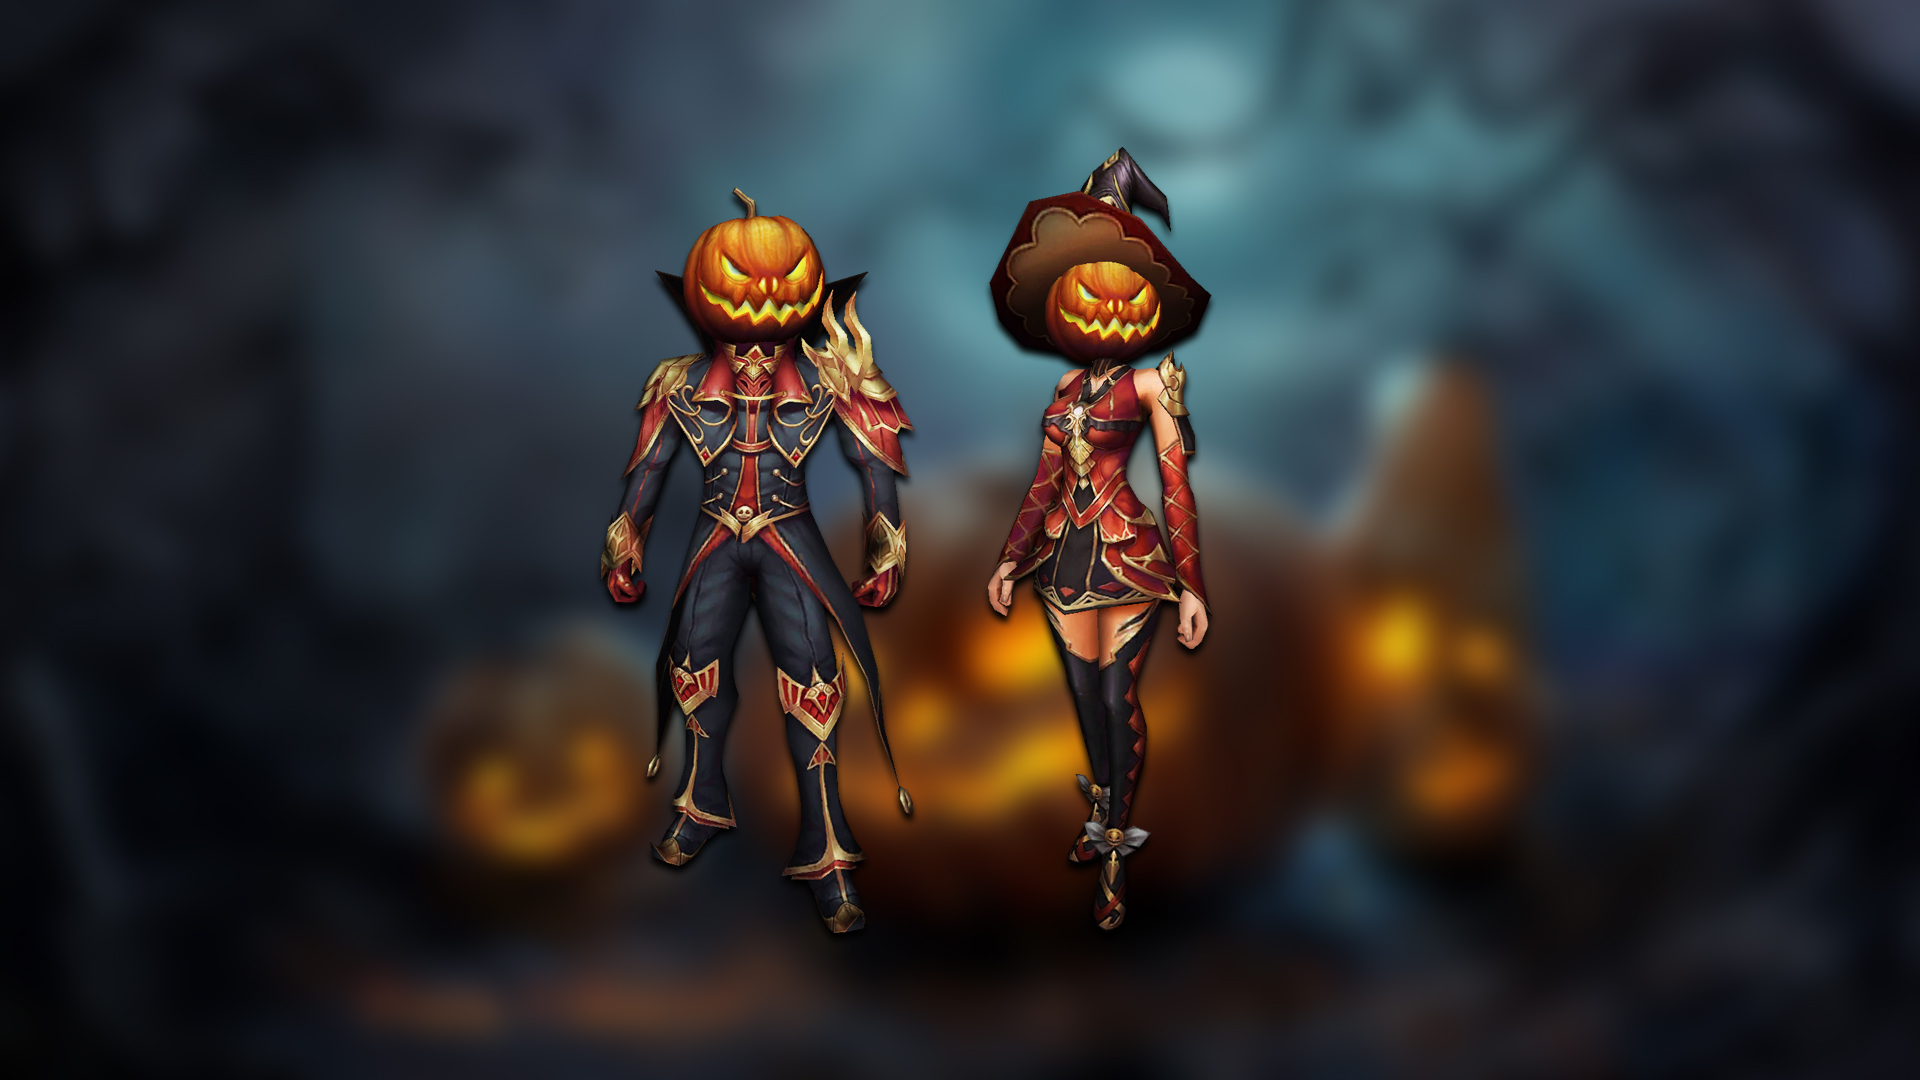 You are currently viewing Jack-O'-Lantern's costumes